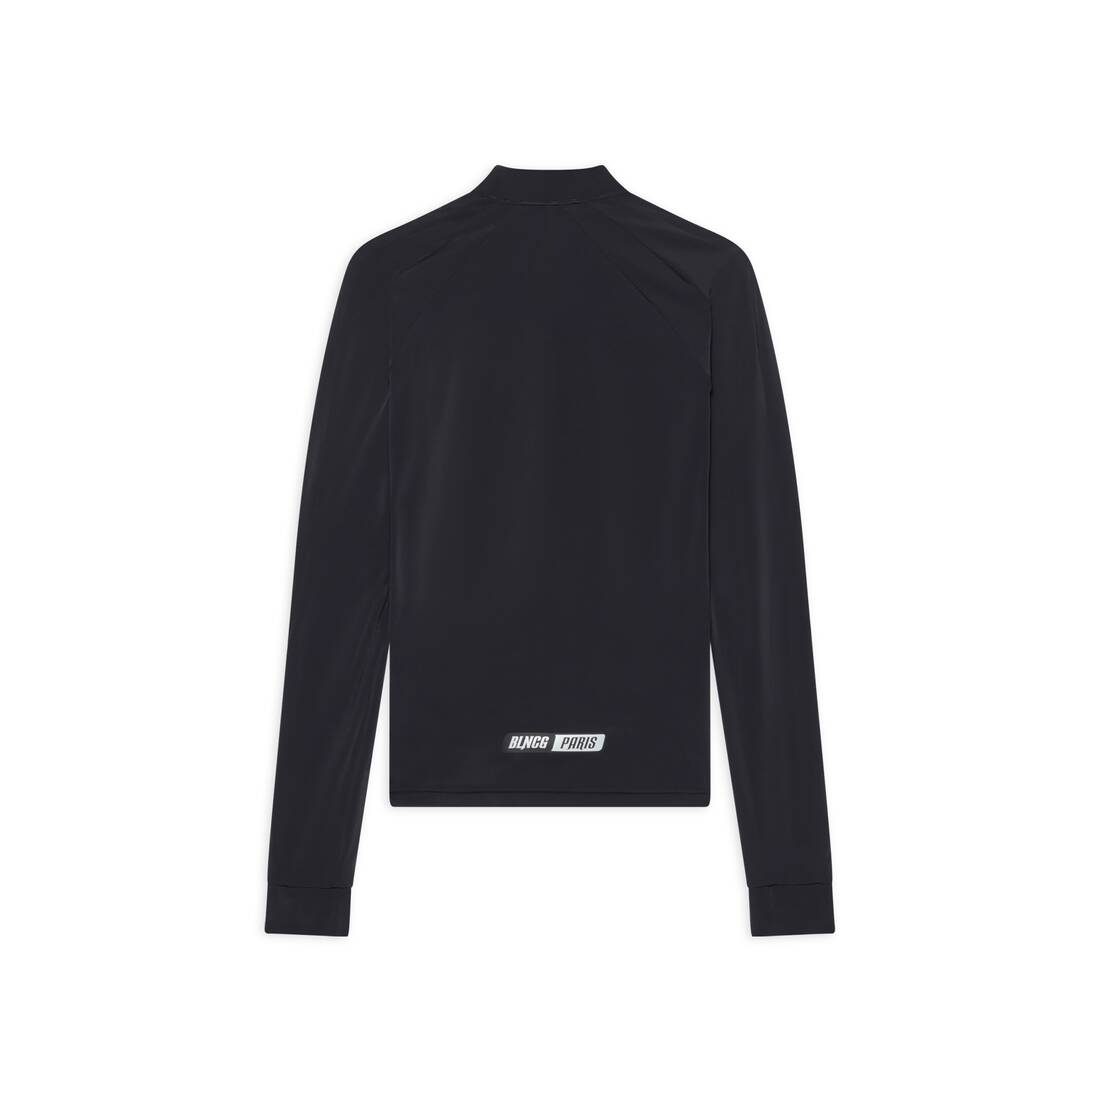 Display zoomed version of sporty b long sleeve top 2